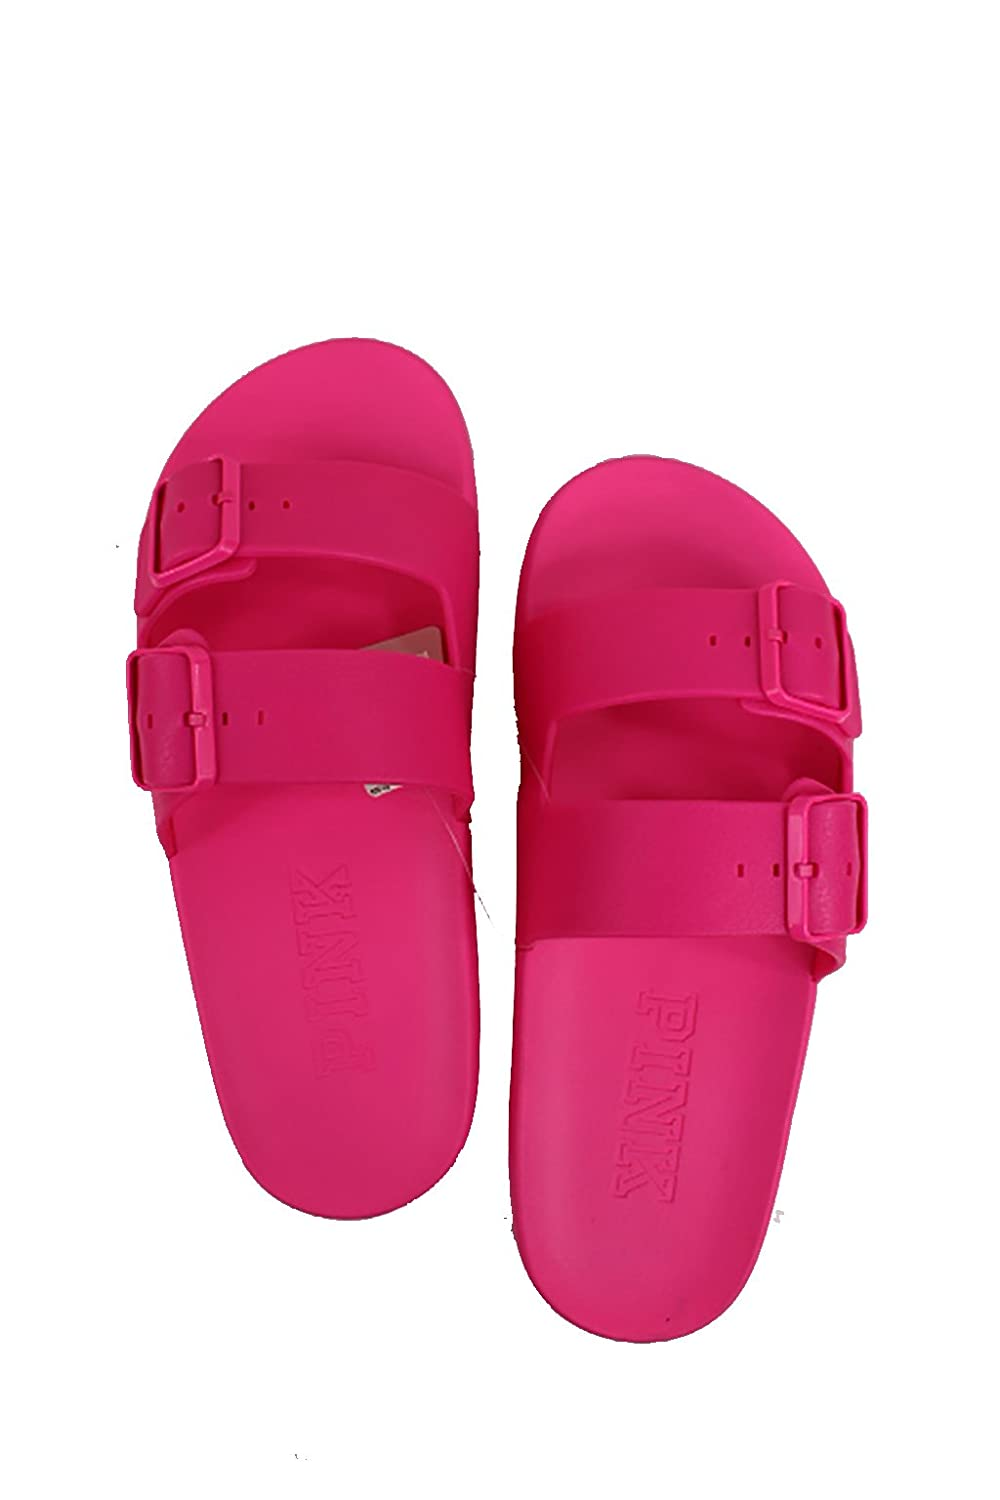 9d55a776baad2 victoria secret by spursgirl Victorias Secret Pink Buckle Slides Hot ...